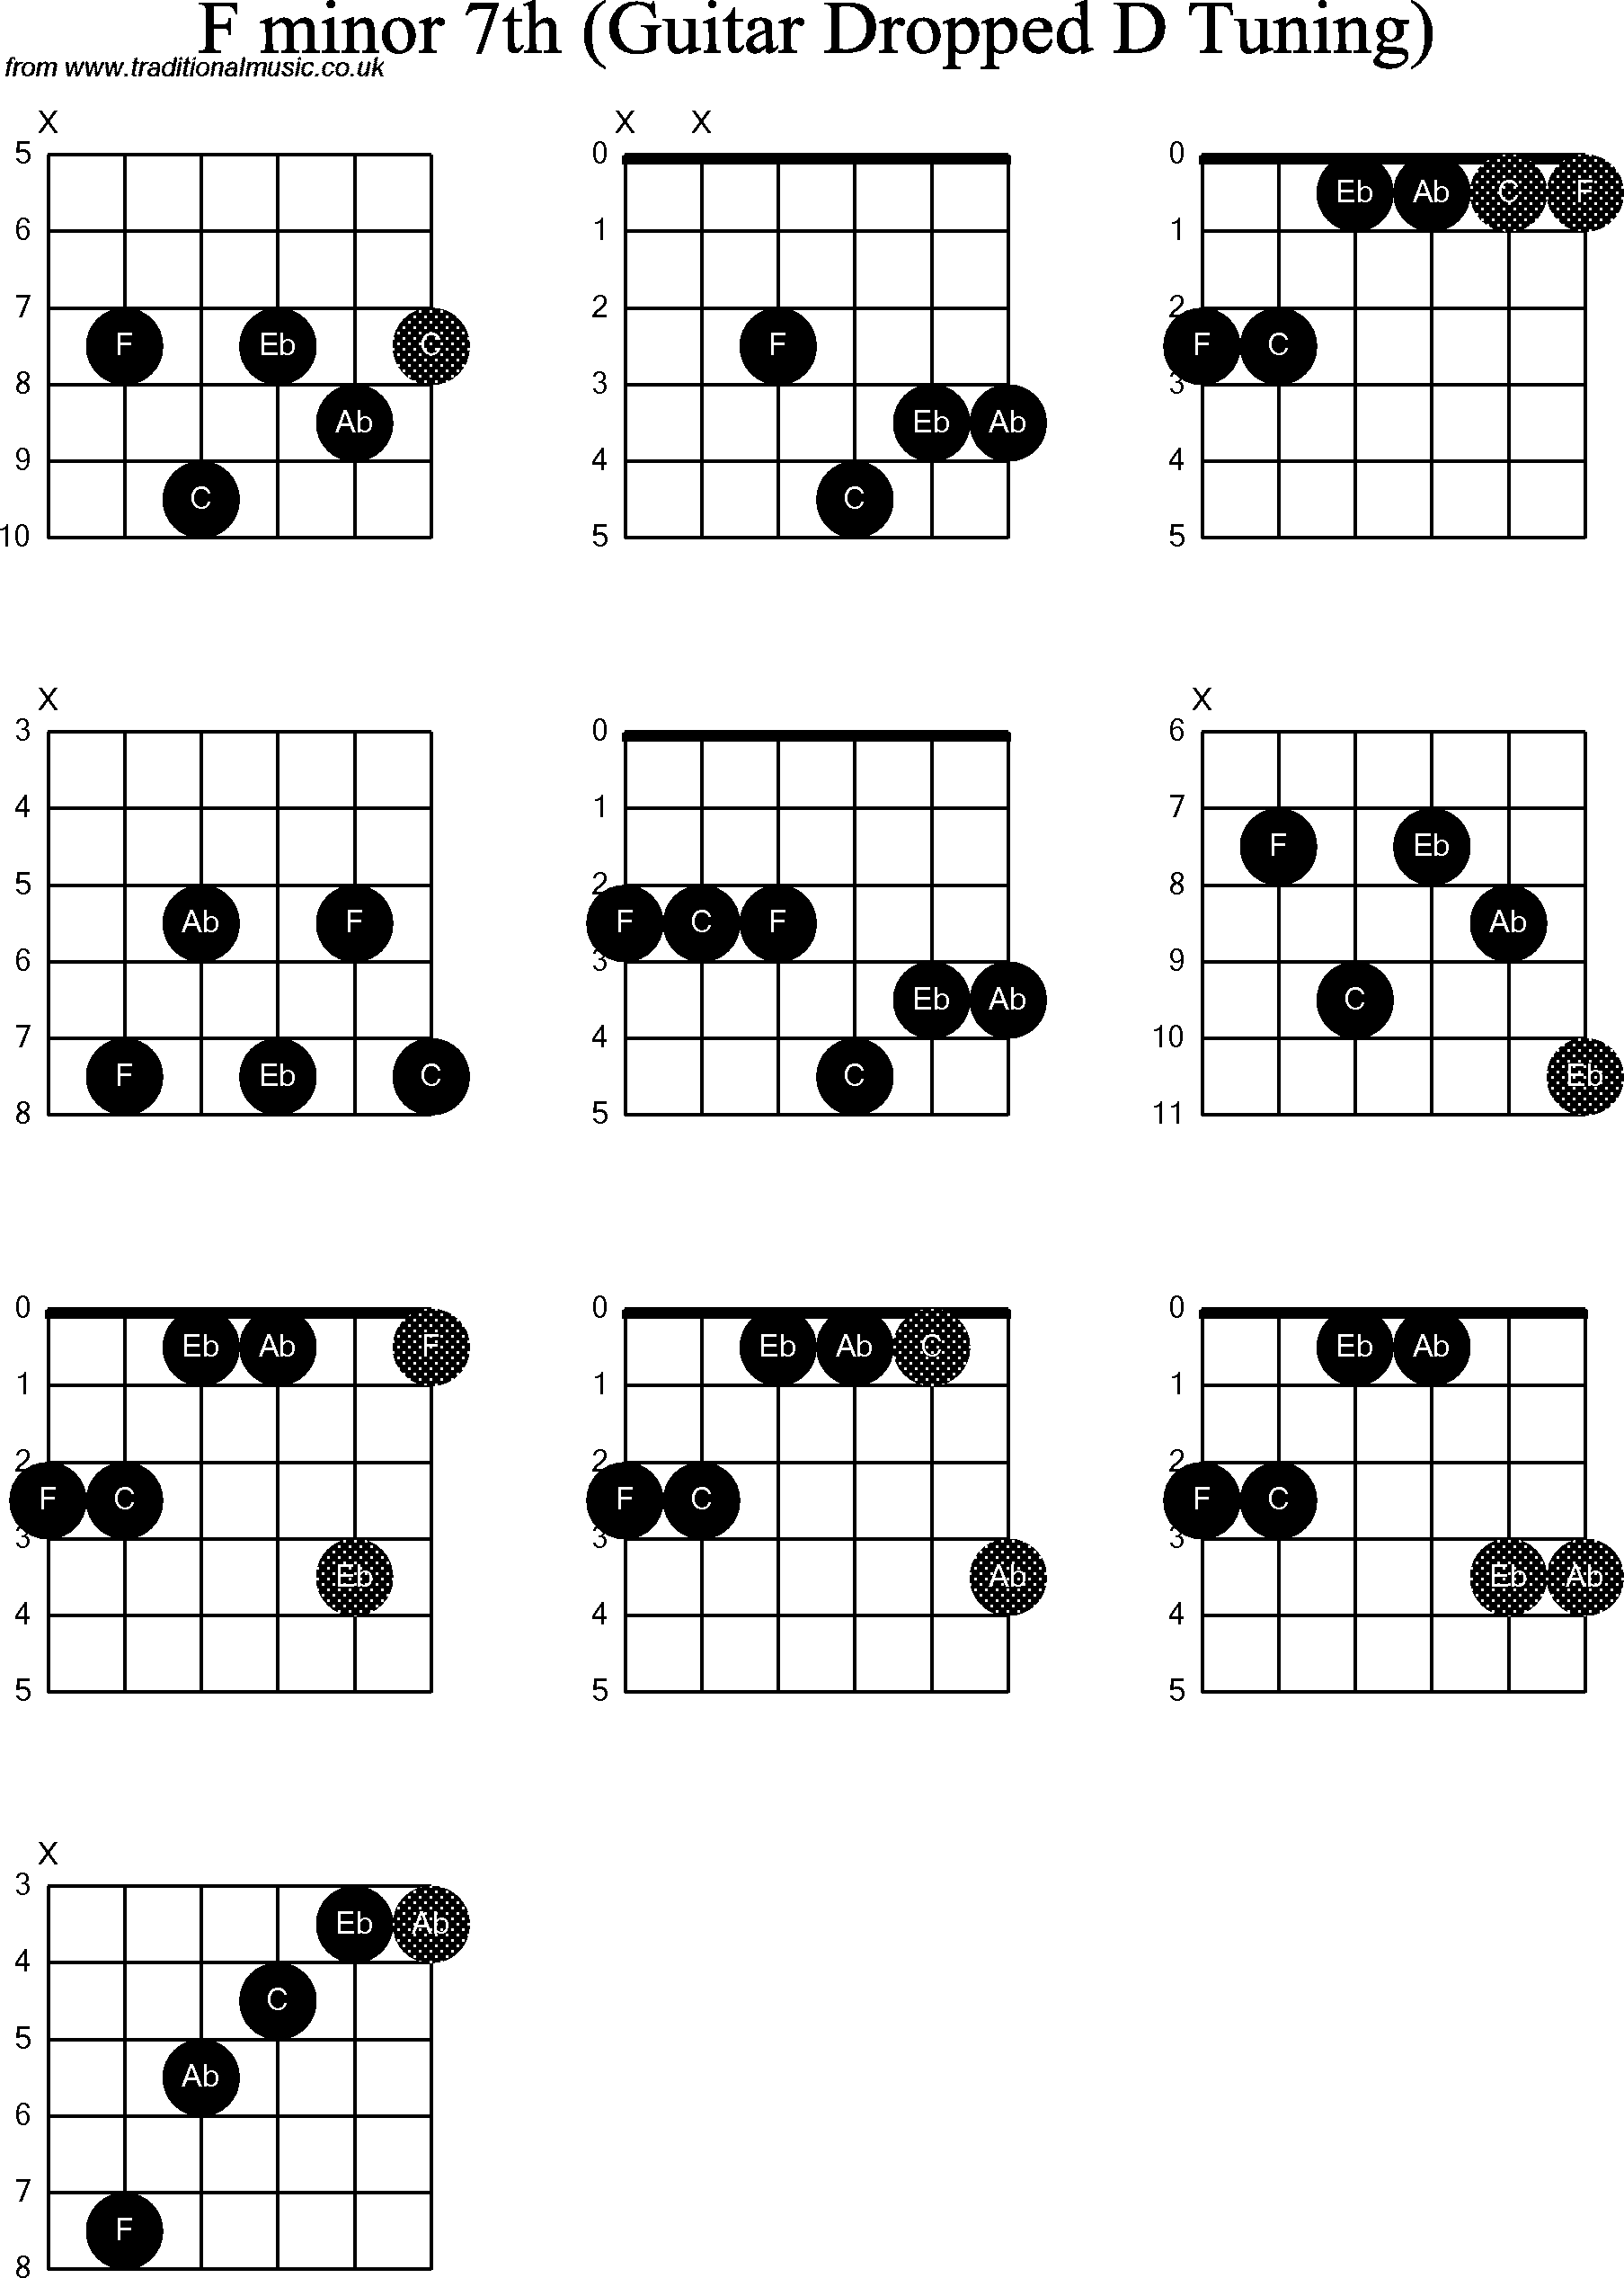 guitar(dropped-d)-chords-f-minor7th.png